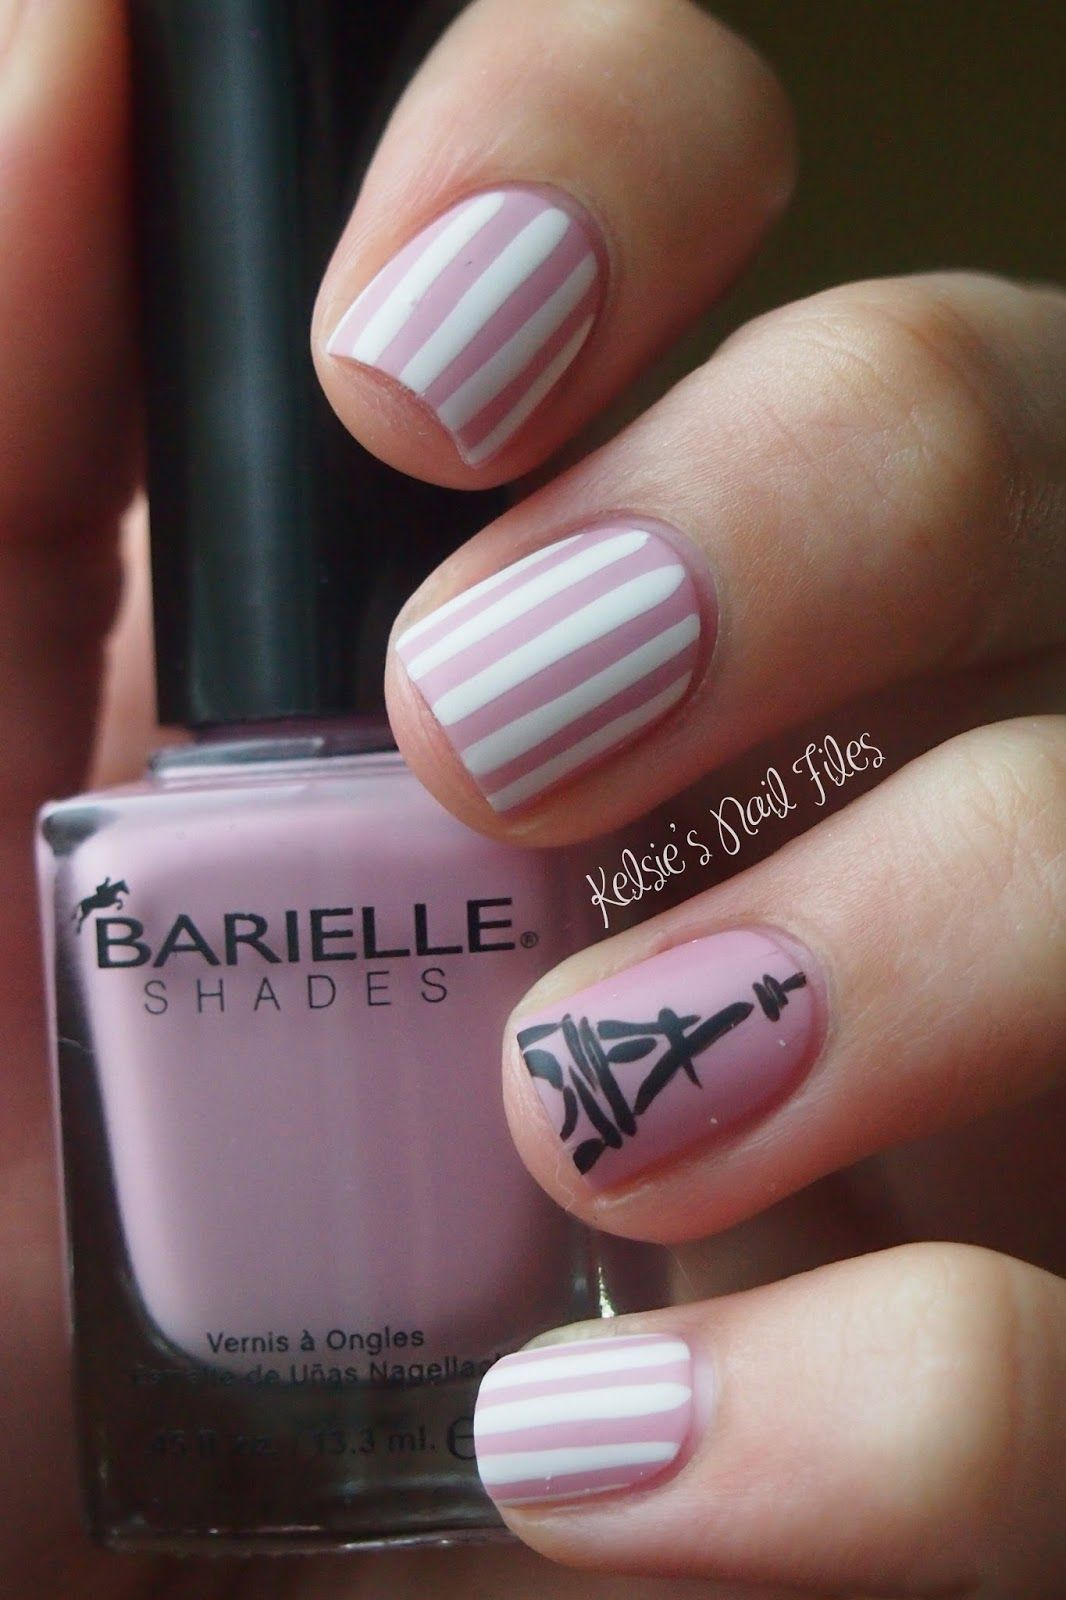 Paris Nails Ooh La La Nail Unhas Unha Nails Unhasdecoradas